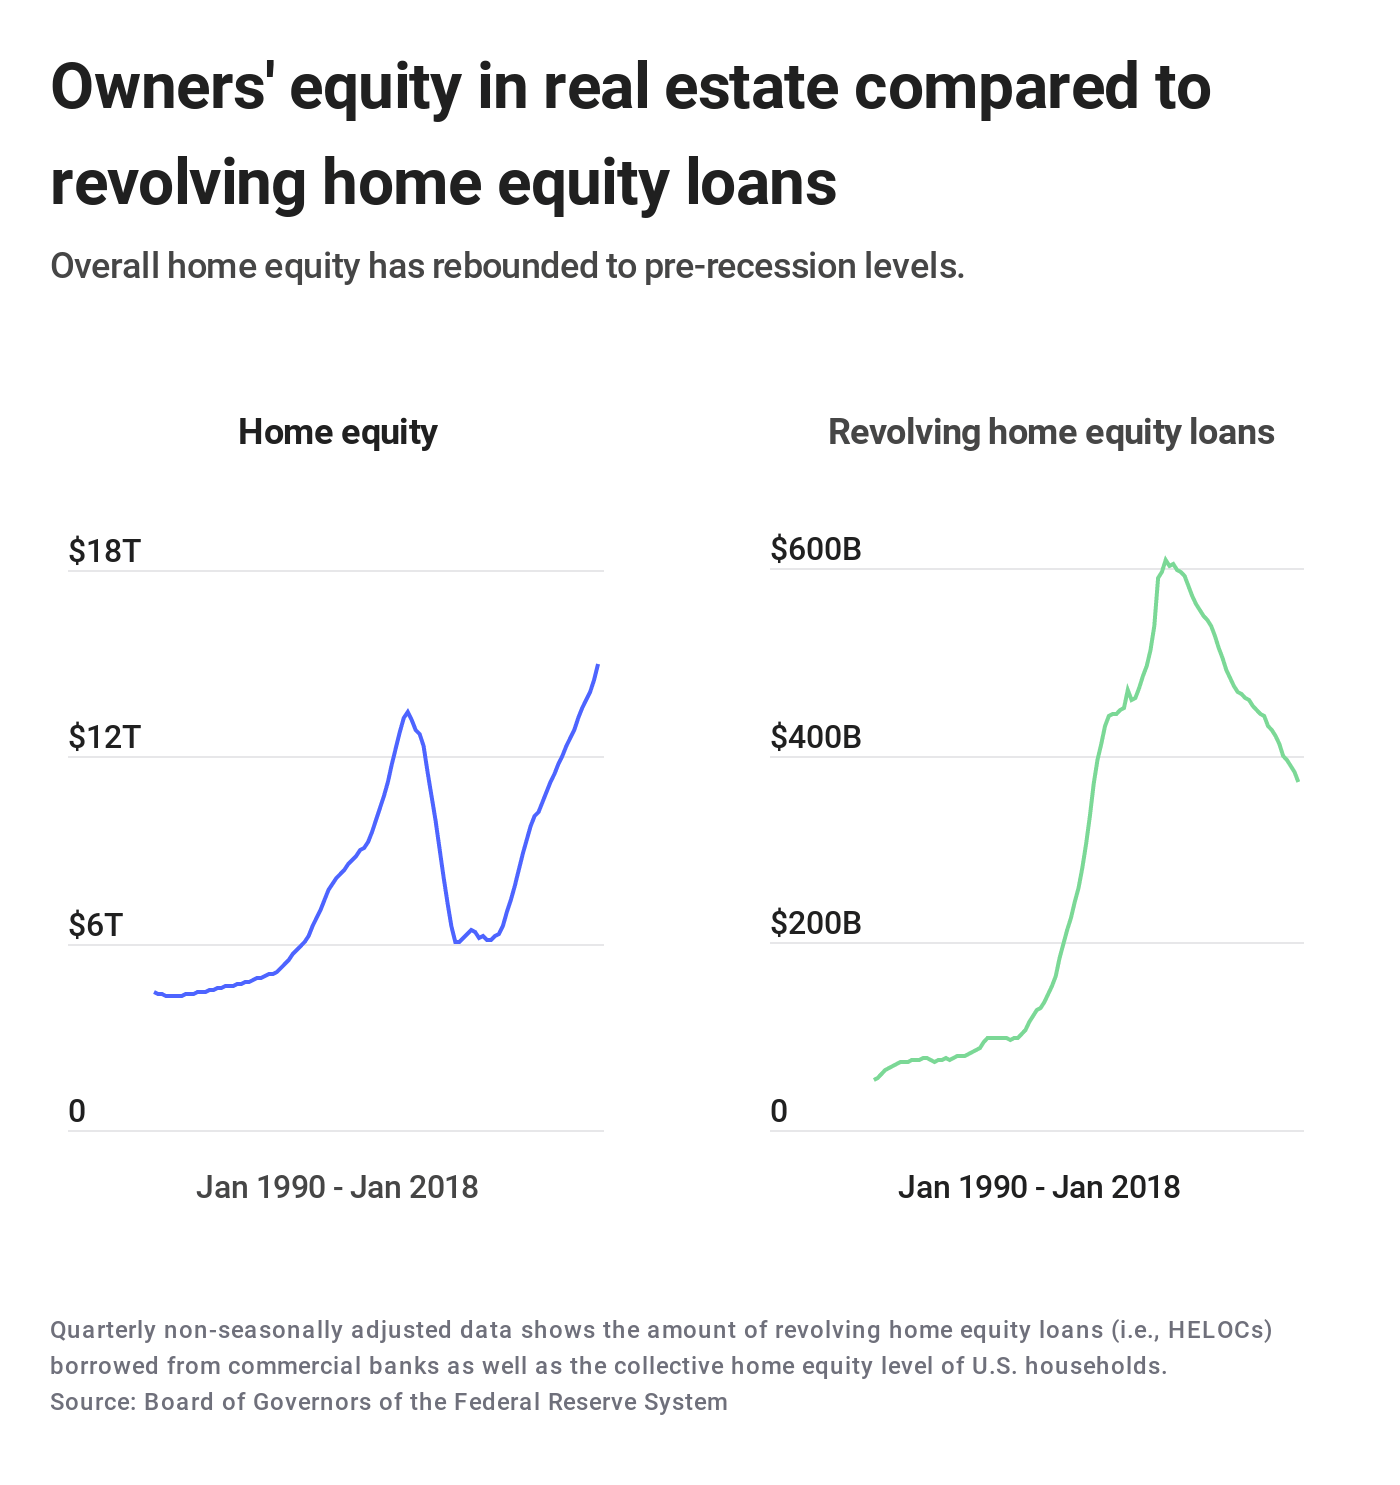 Owners' equity in real estate compared to revolving home equity loans